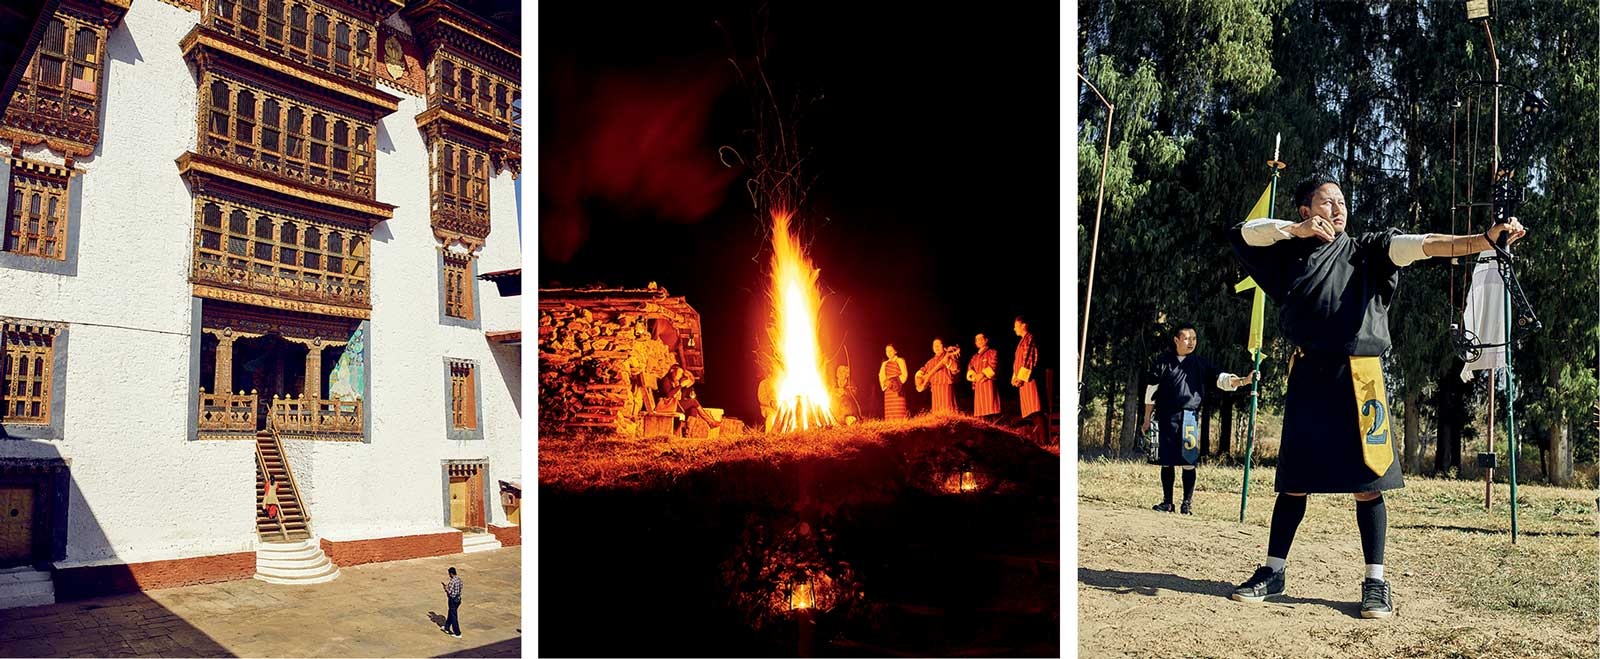 Popular tourist attractions in Bhutan